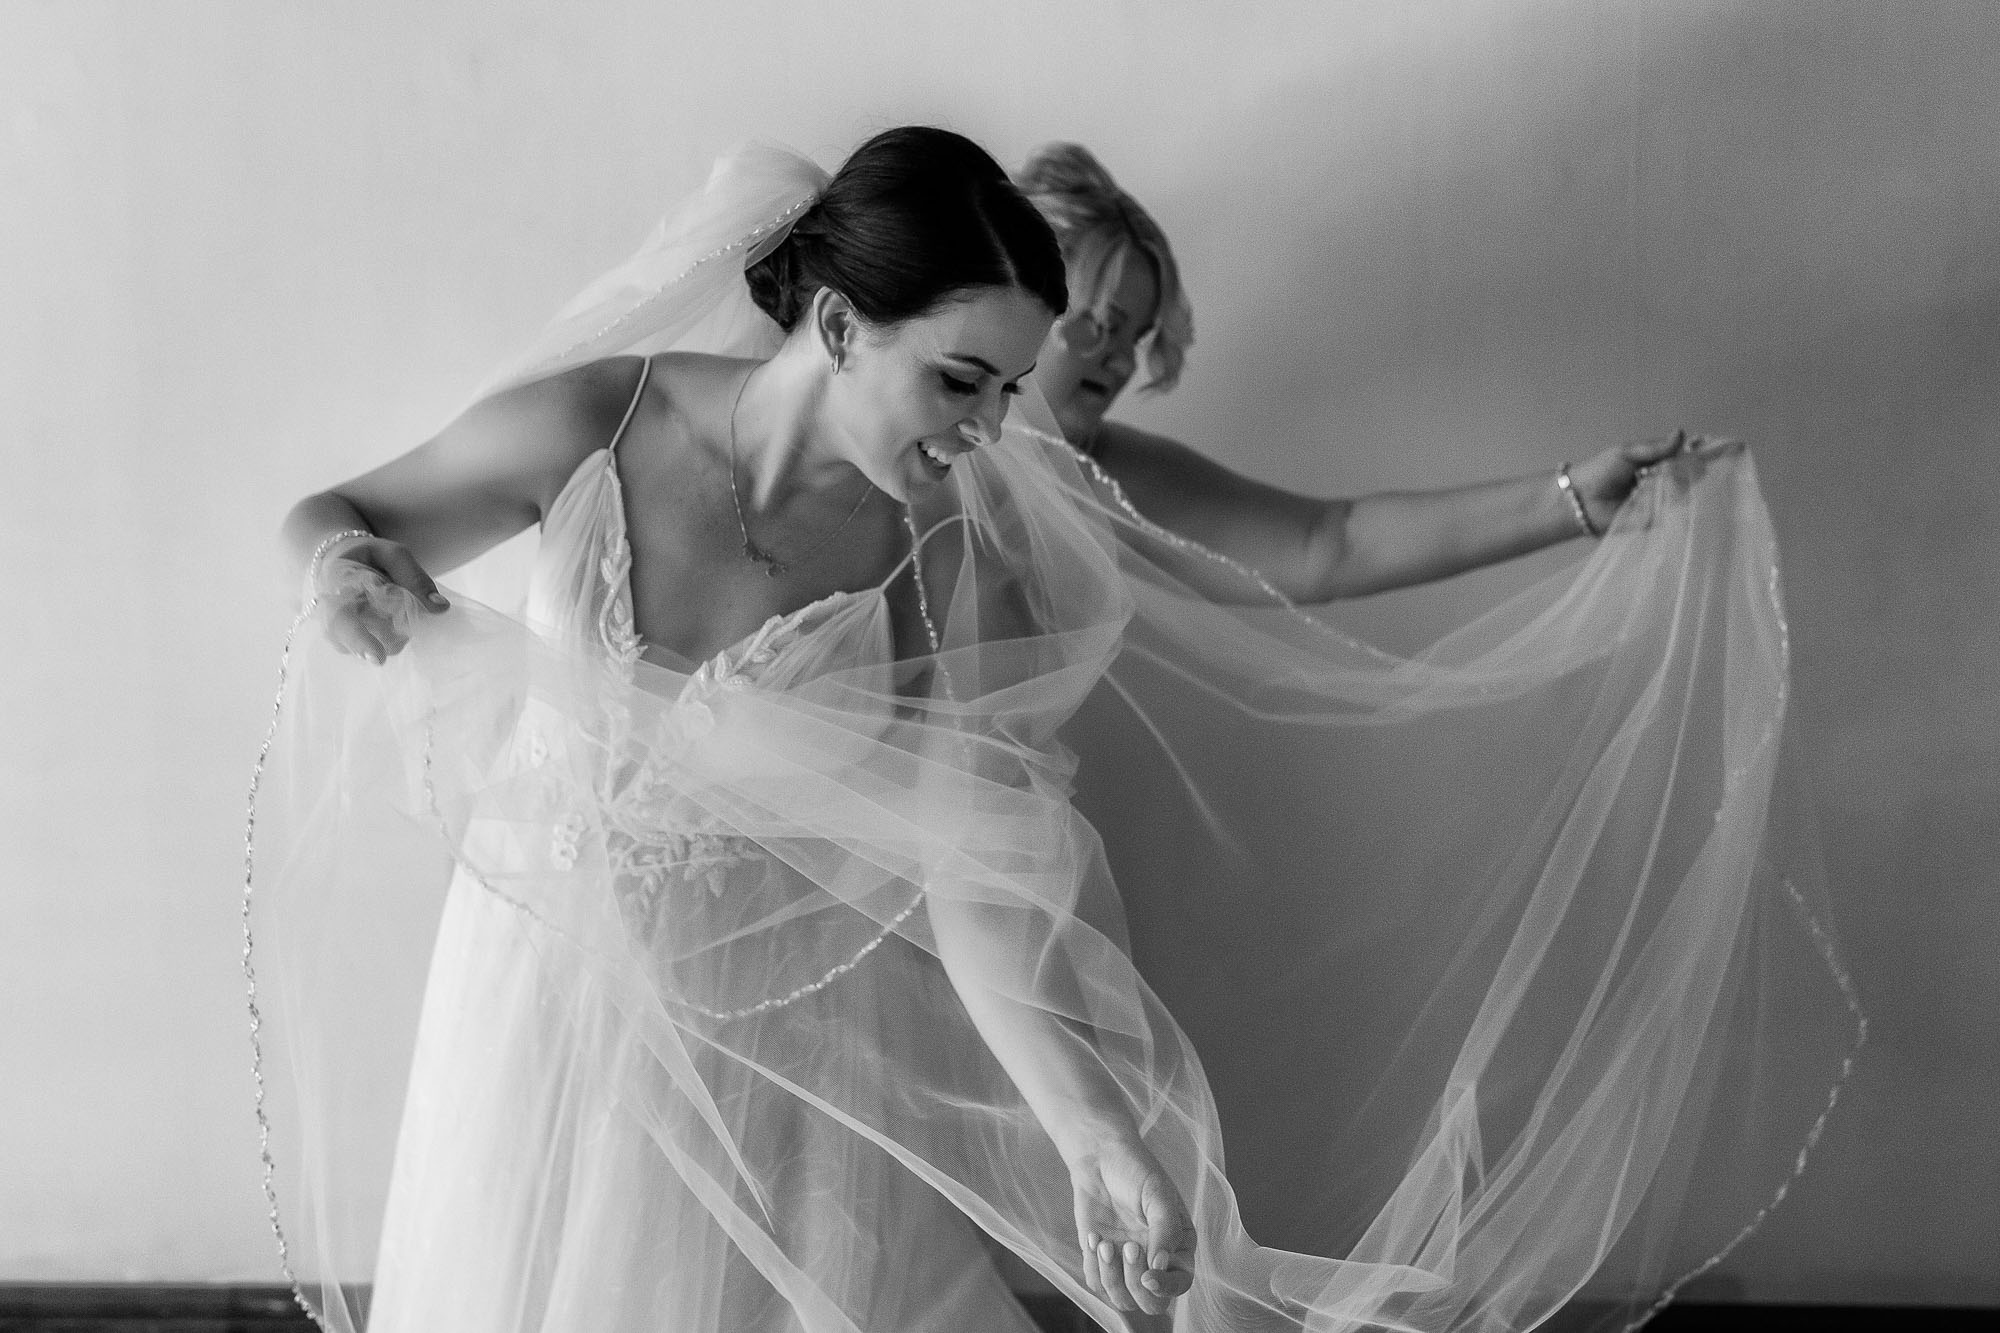 The bride arranging her veil while getting ready